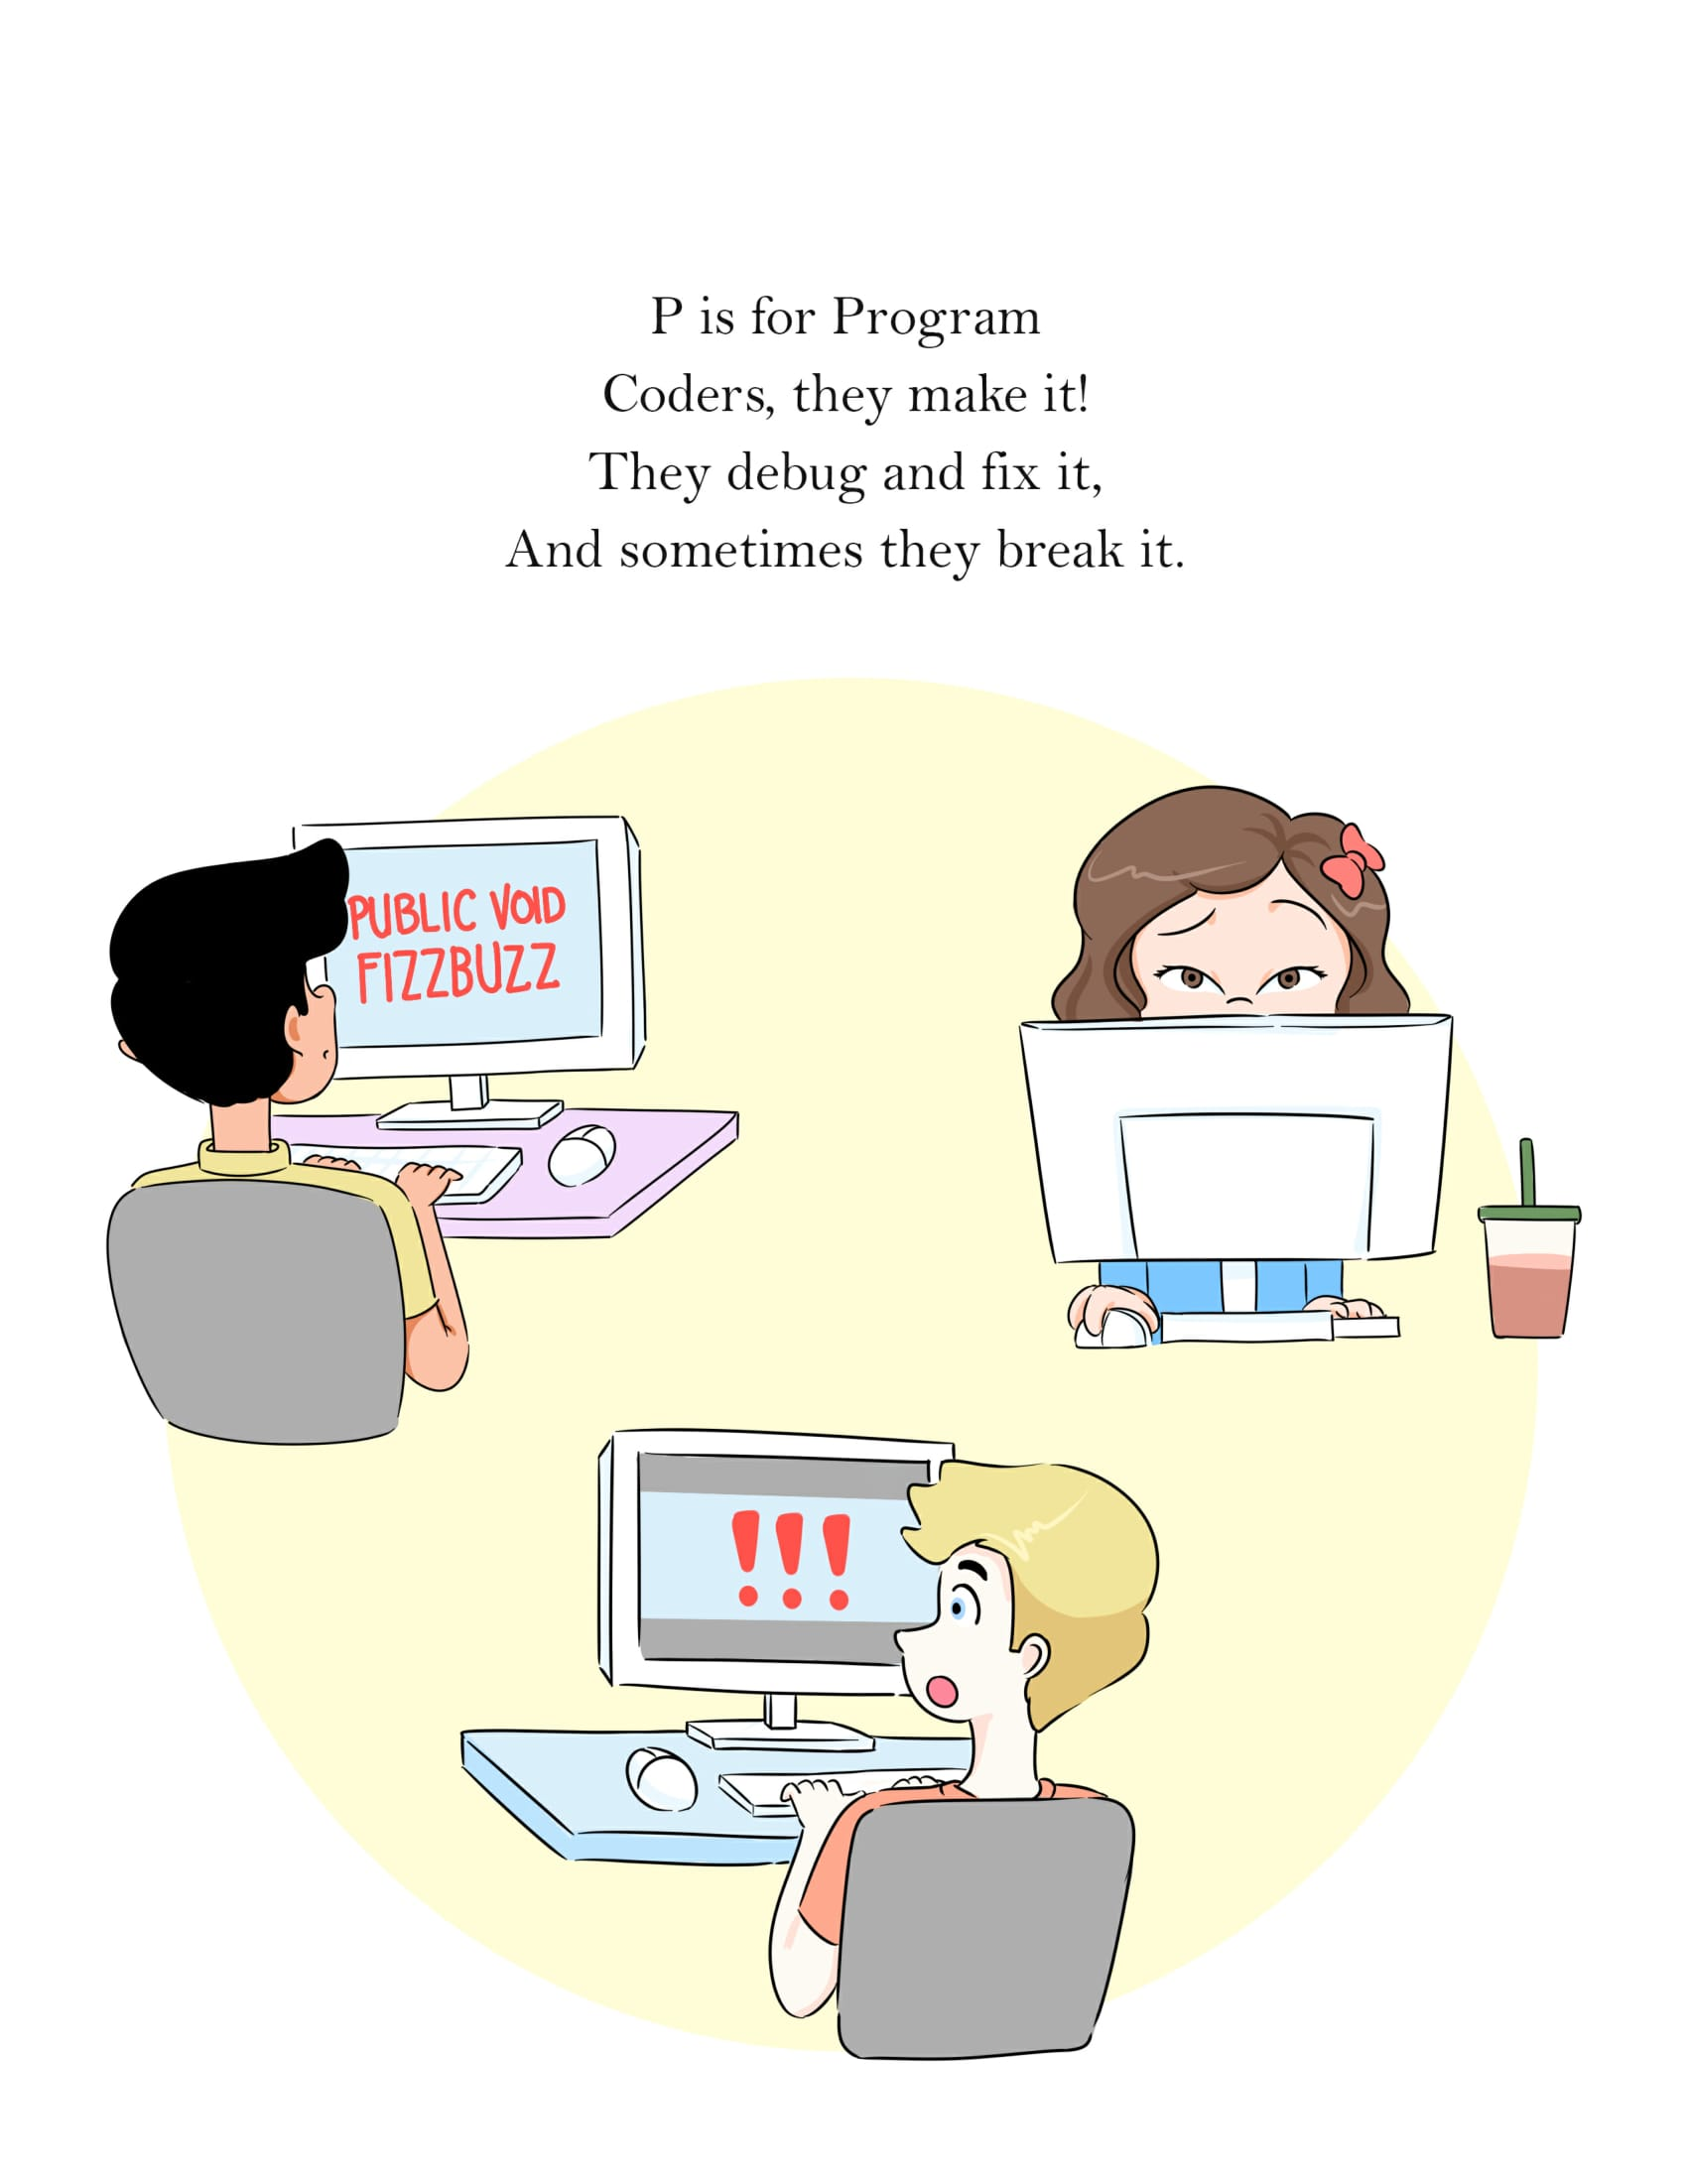 P is for Program